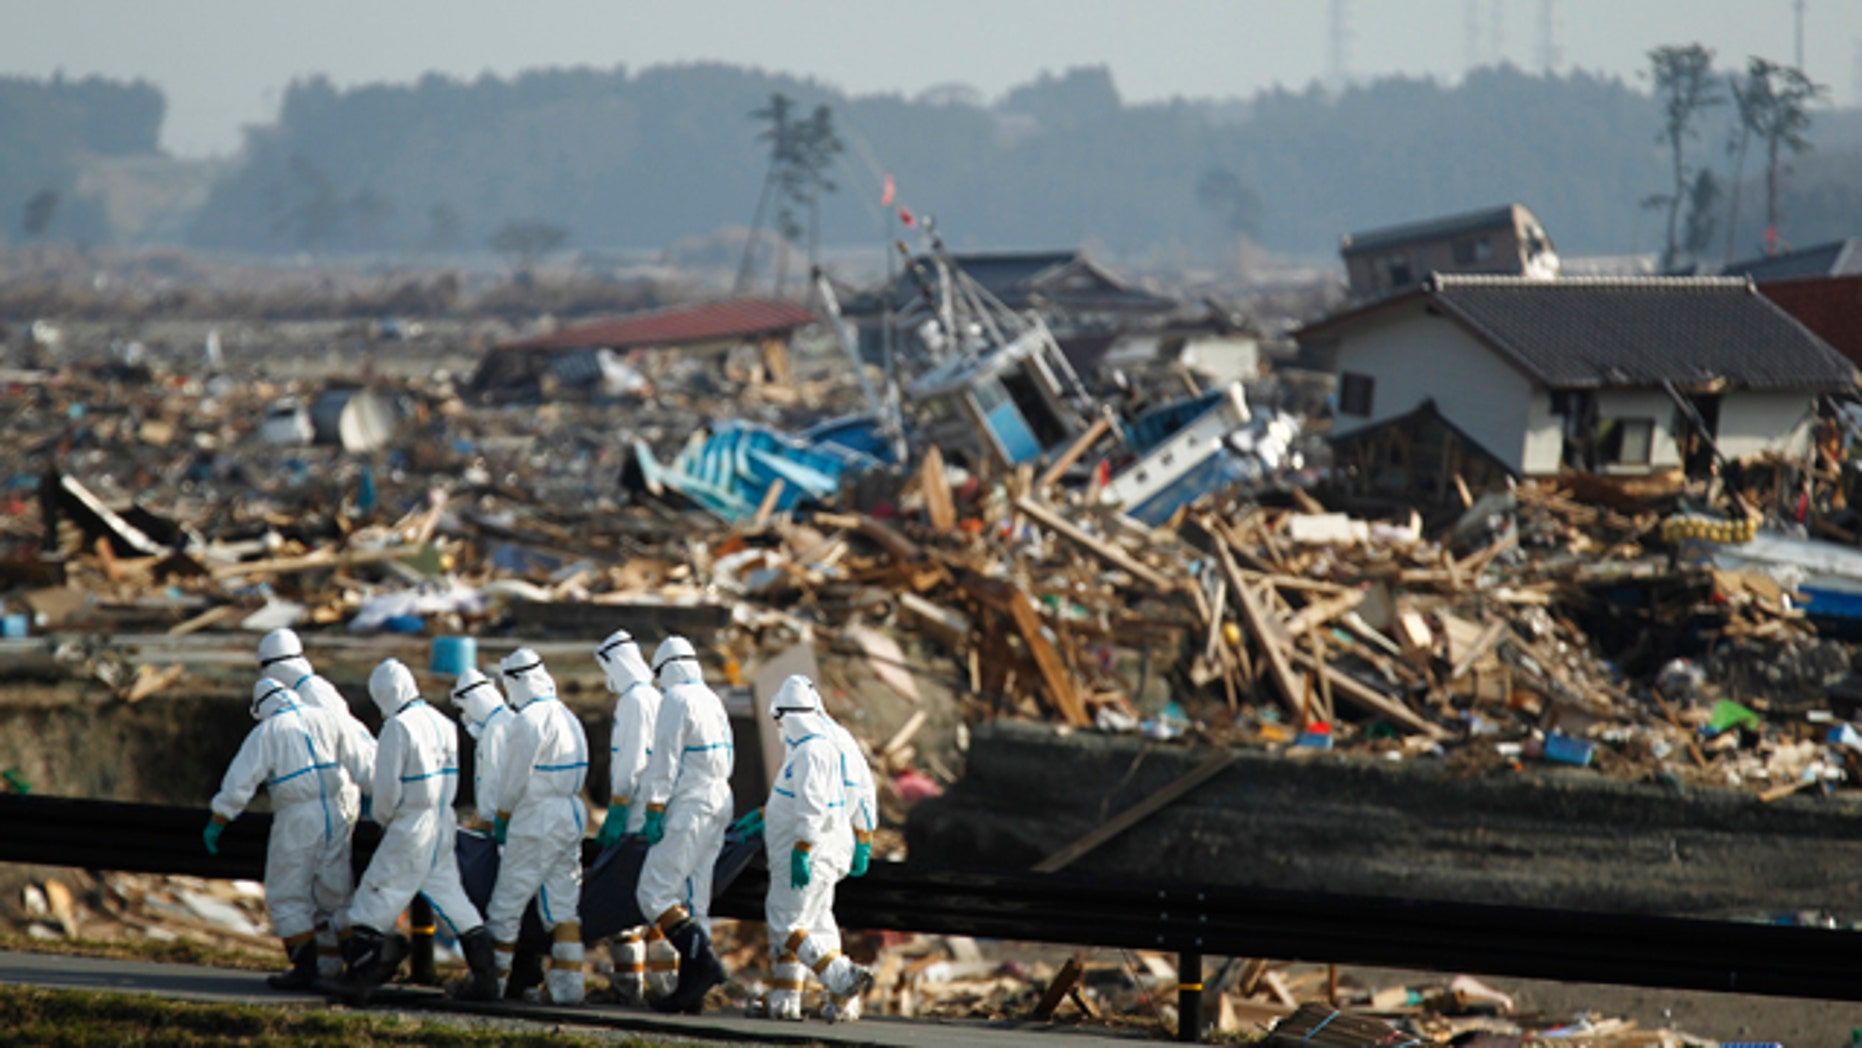 April 15: Japanese police officers carry a body during search and recovery operation for missing victims in the area devastated by the March 11 earthquake and tsunami in Namie, Fukushima Prefecture, northeastern Japan. In the background is part of the Fukushima Dai-ichi nuclear complex. (AP)